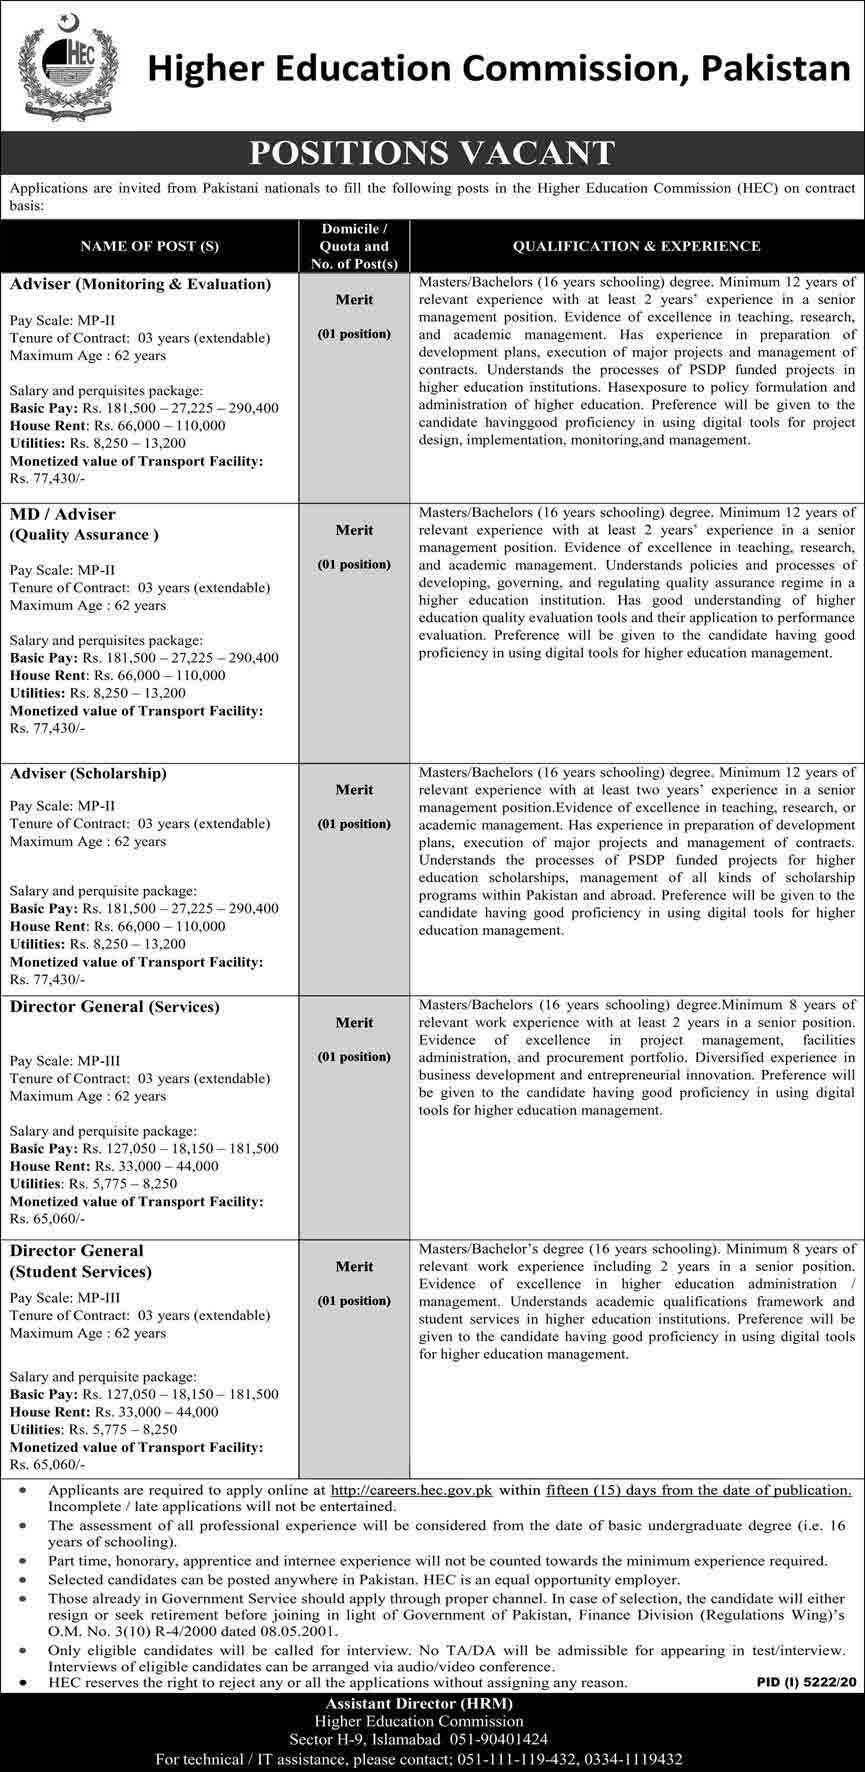 Higher Education Commission (HEC) Islamabad Jobs March 2021